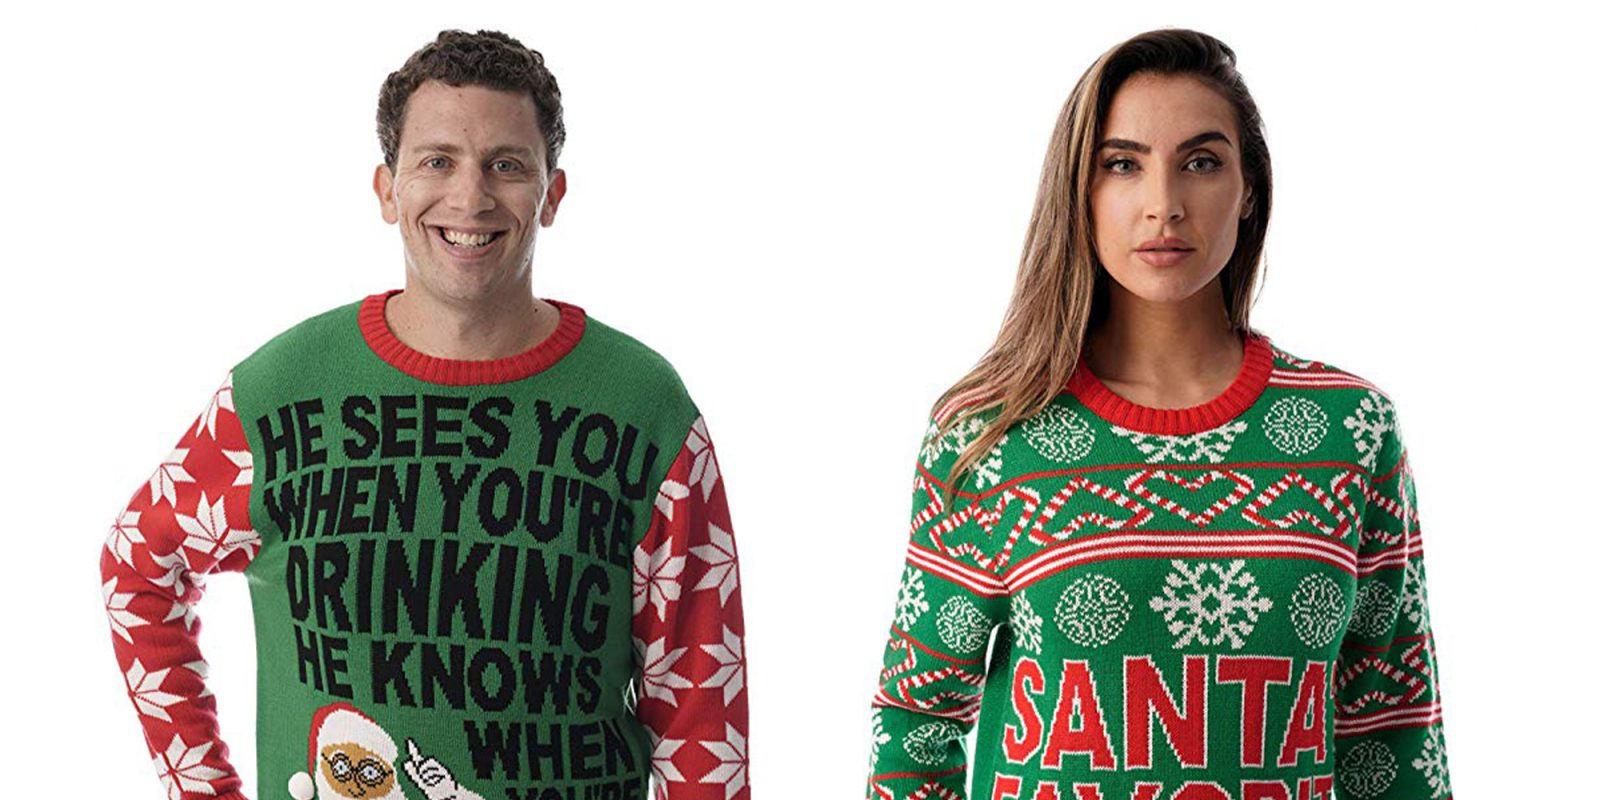 Naughty Christmas sweaters on sale in today's Gold from just $14